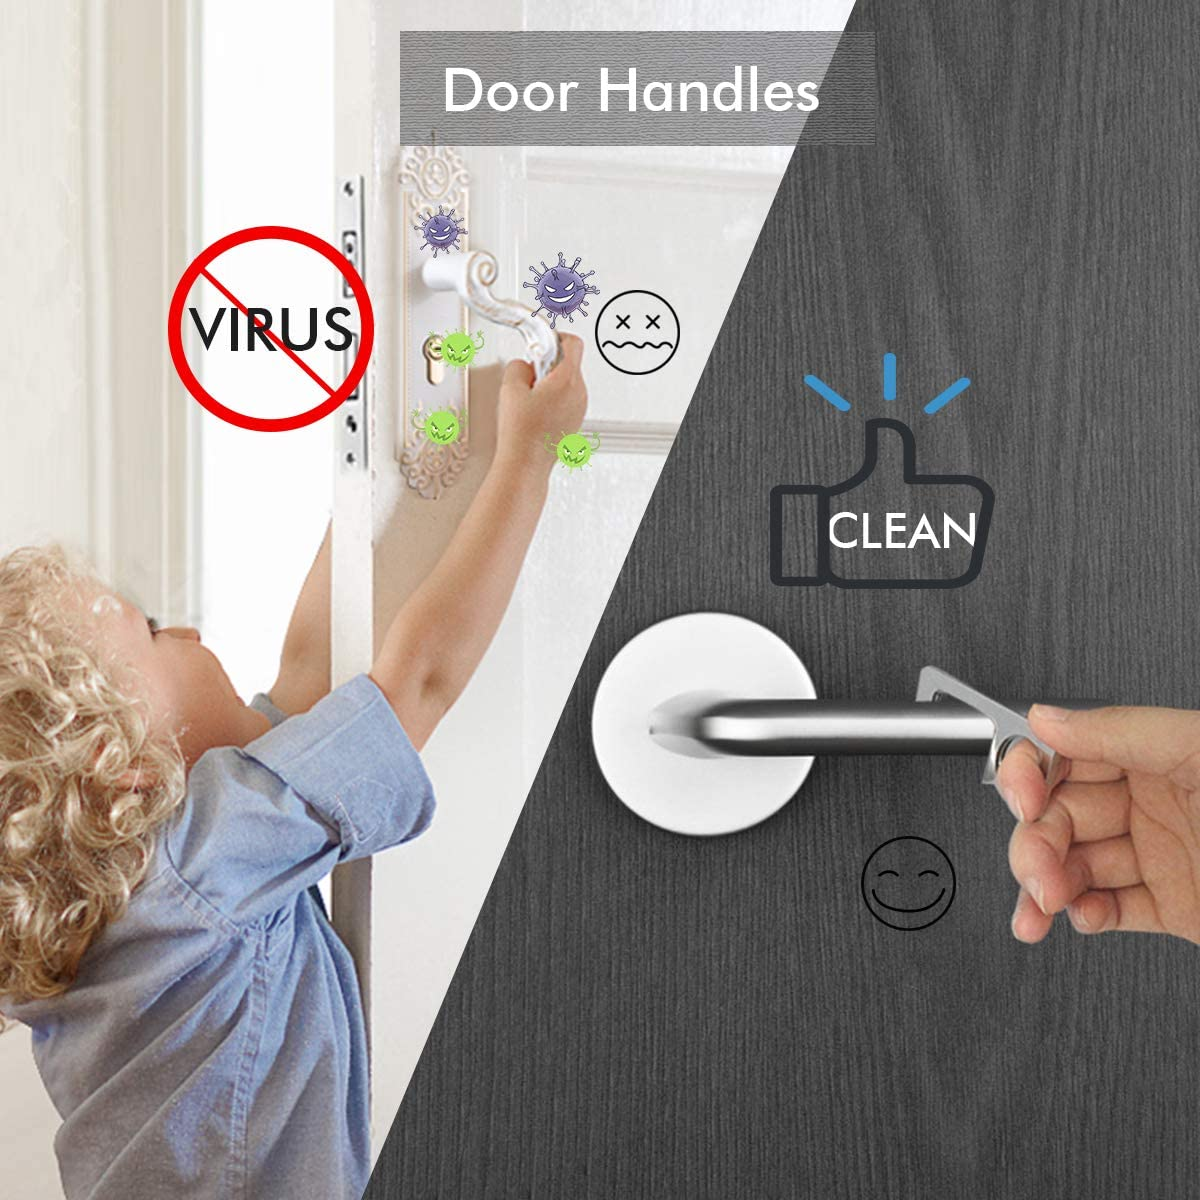 HLenyoy Clean Key No Touch Door Opener Stylus Keychain